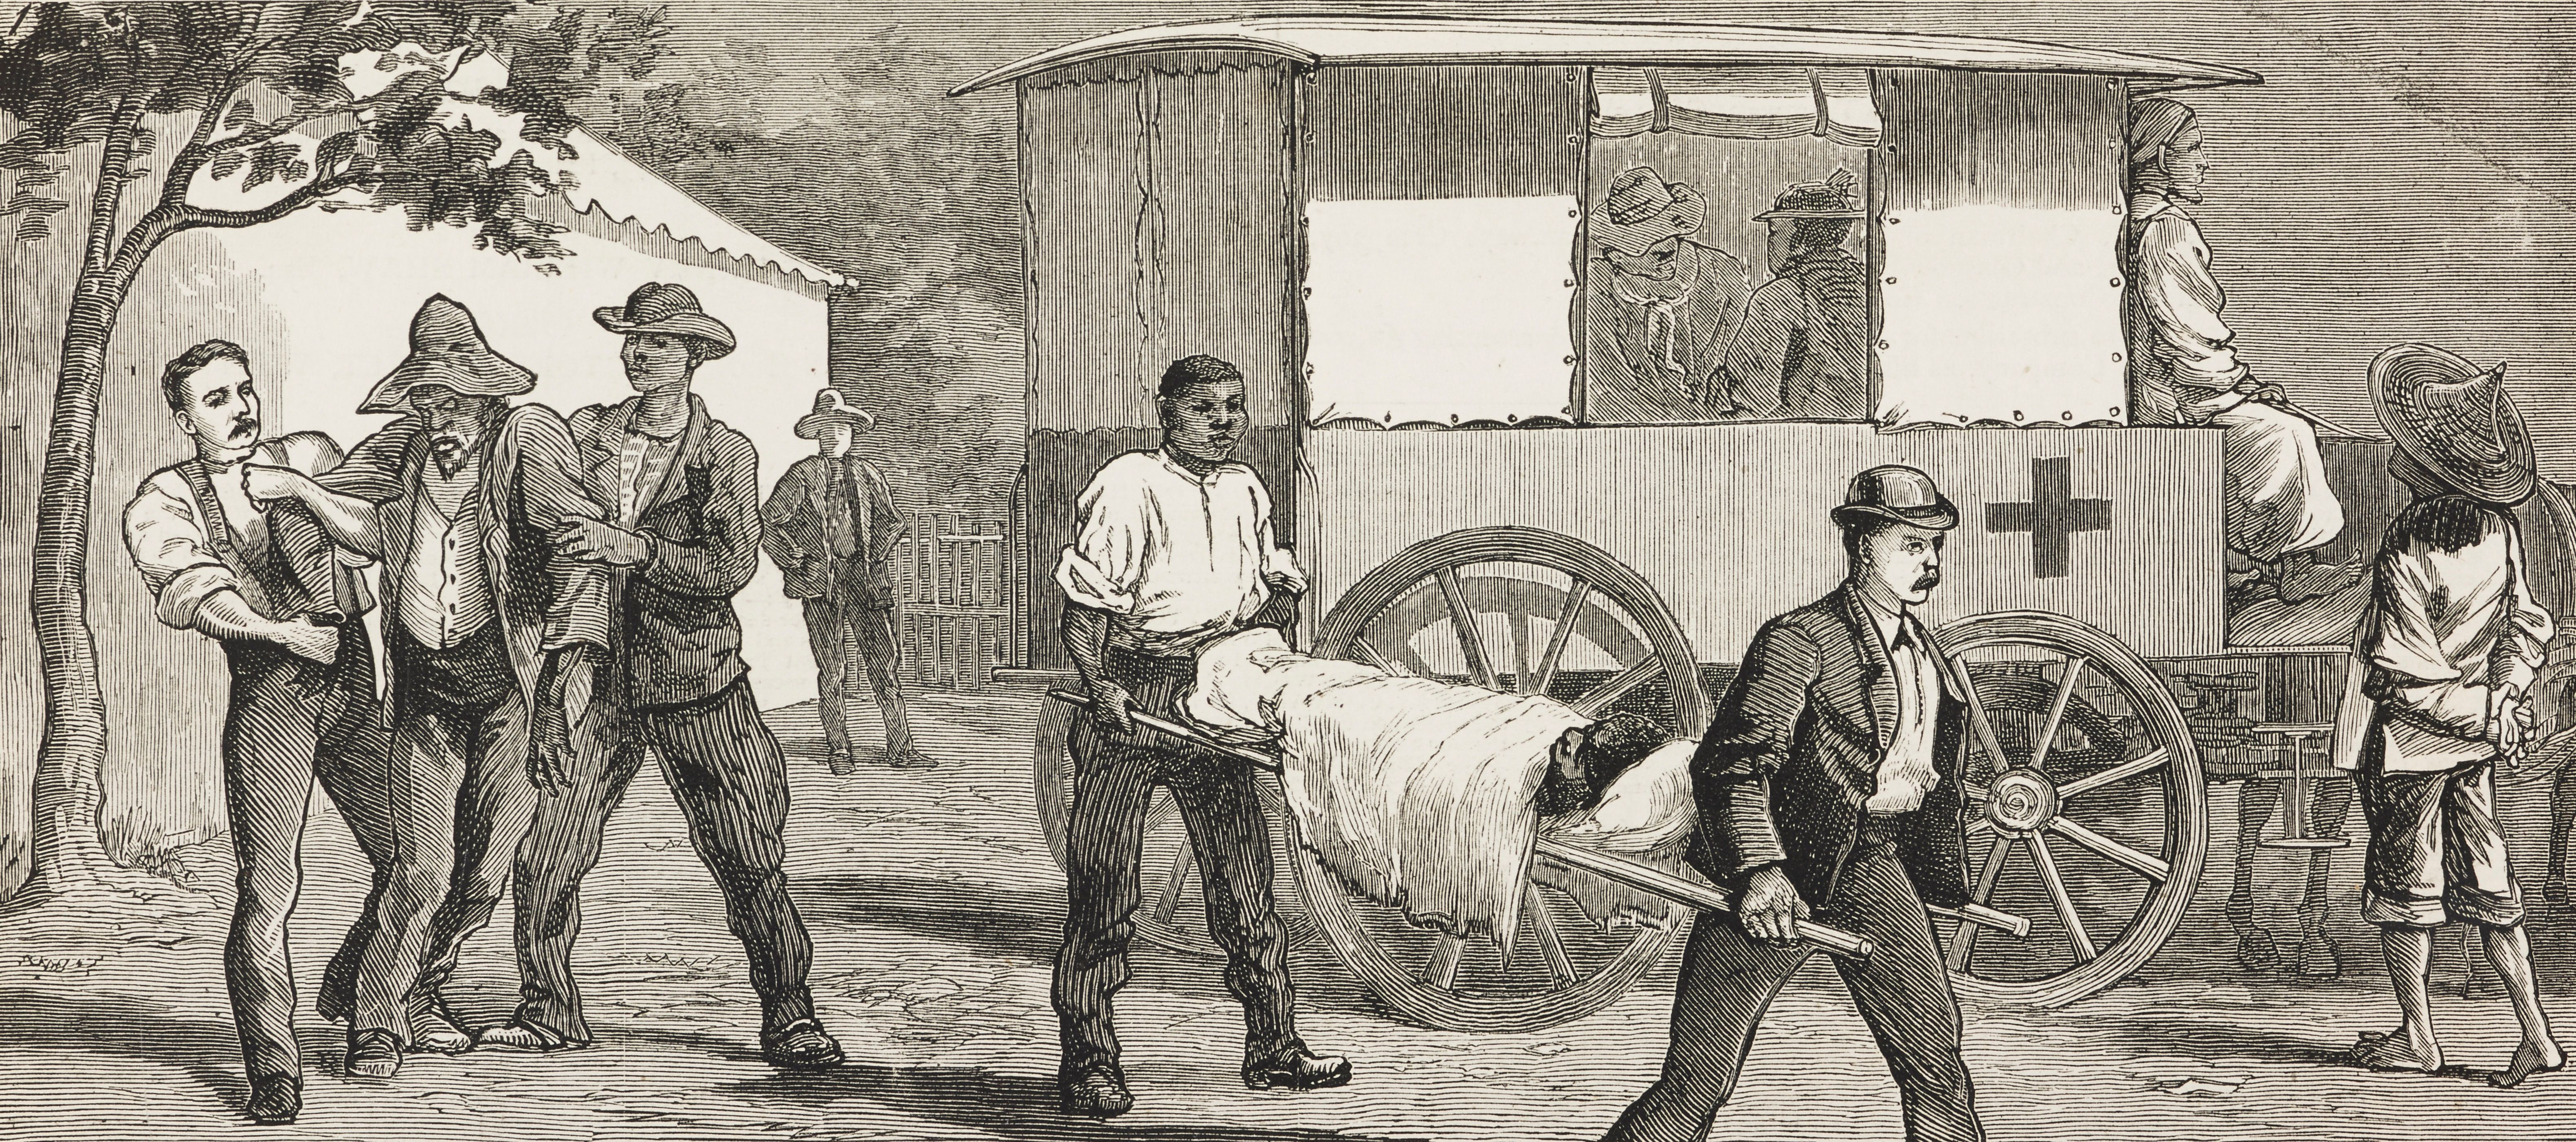 An illustration from 1883 shows patients in Cape Town, South Africa, suffering from smallpox.